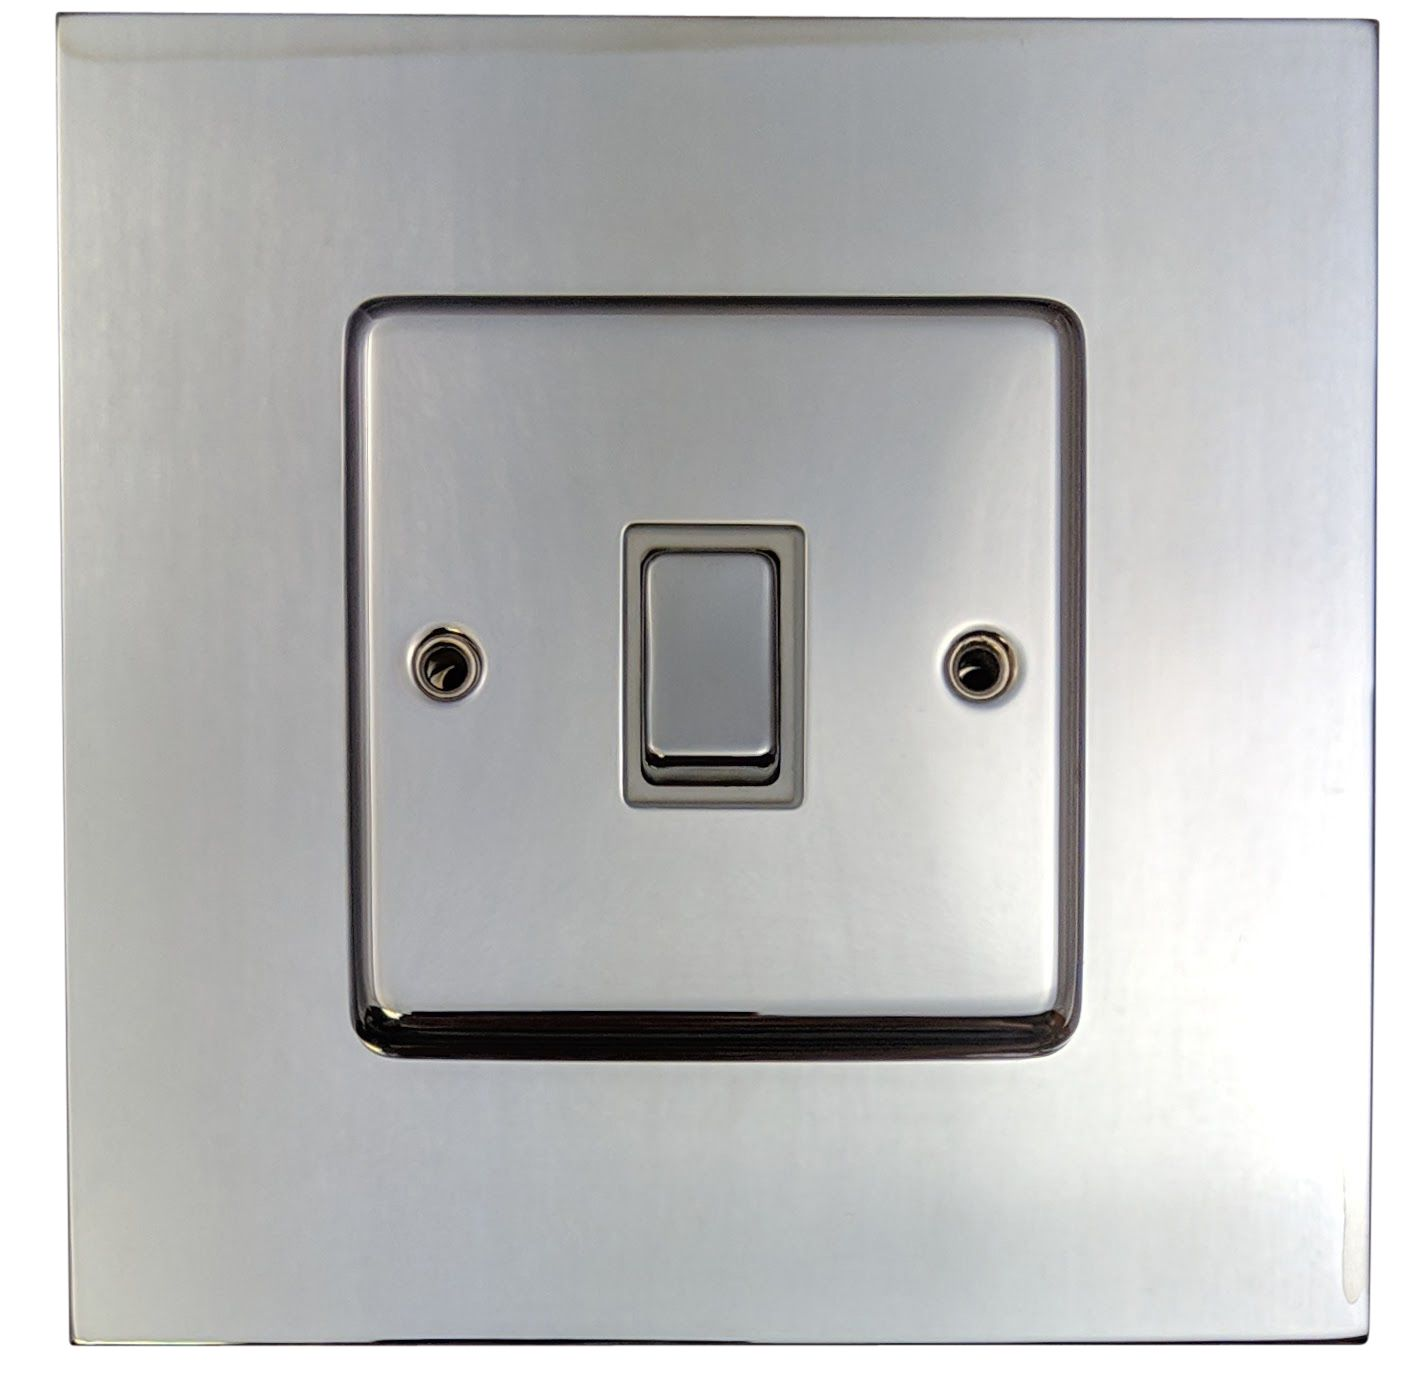 G Amp H 809c Polished Chrome Finger Plate Surround 152mm X